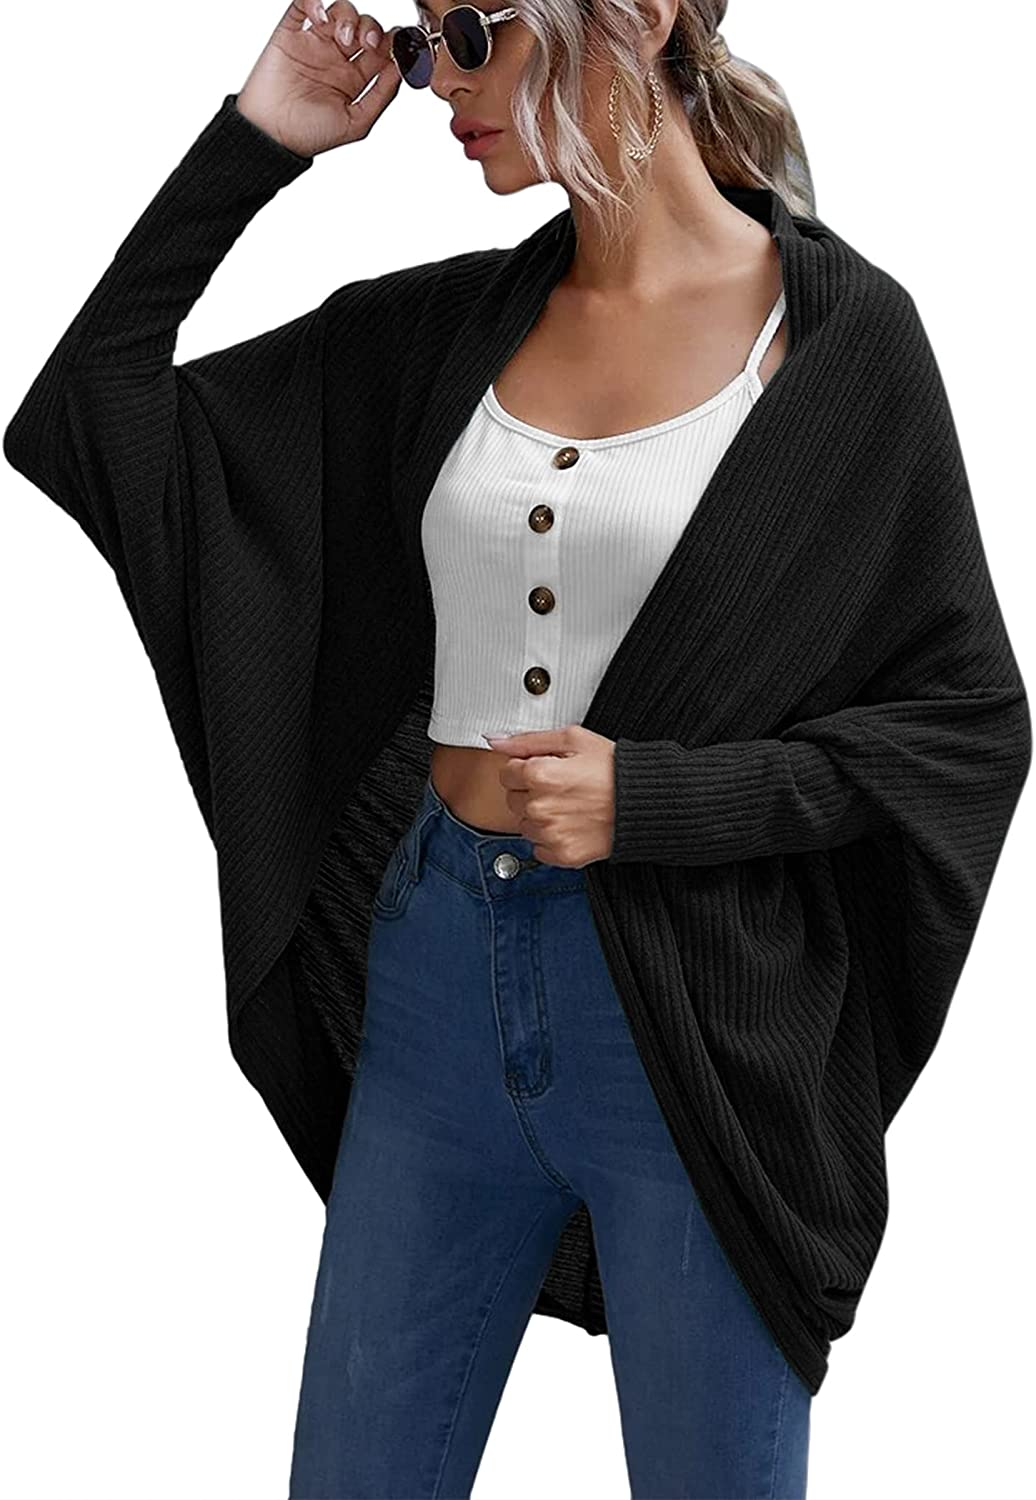 Chigant Womens Cardigan Long Batwing Sleeve Sweater Open Front Knit Lightweight Casual Outwear